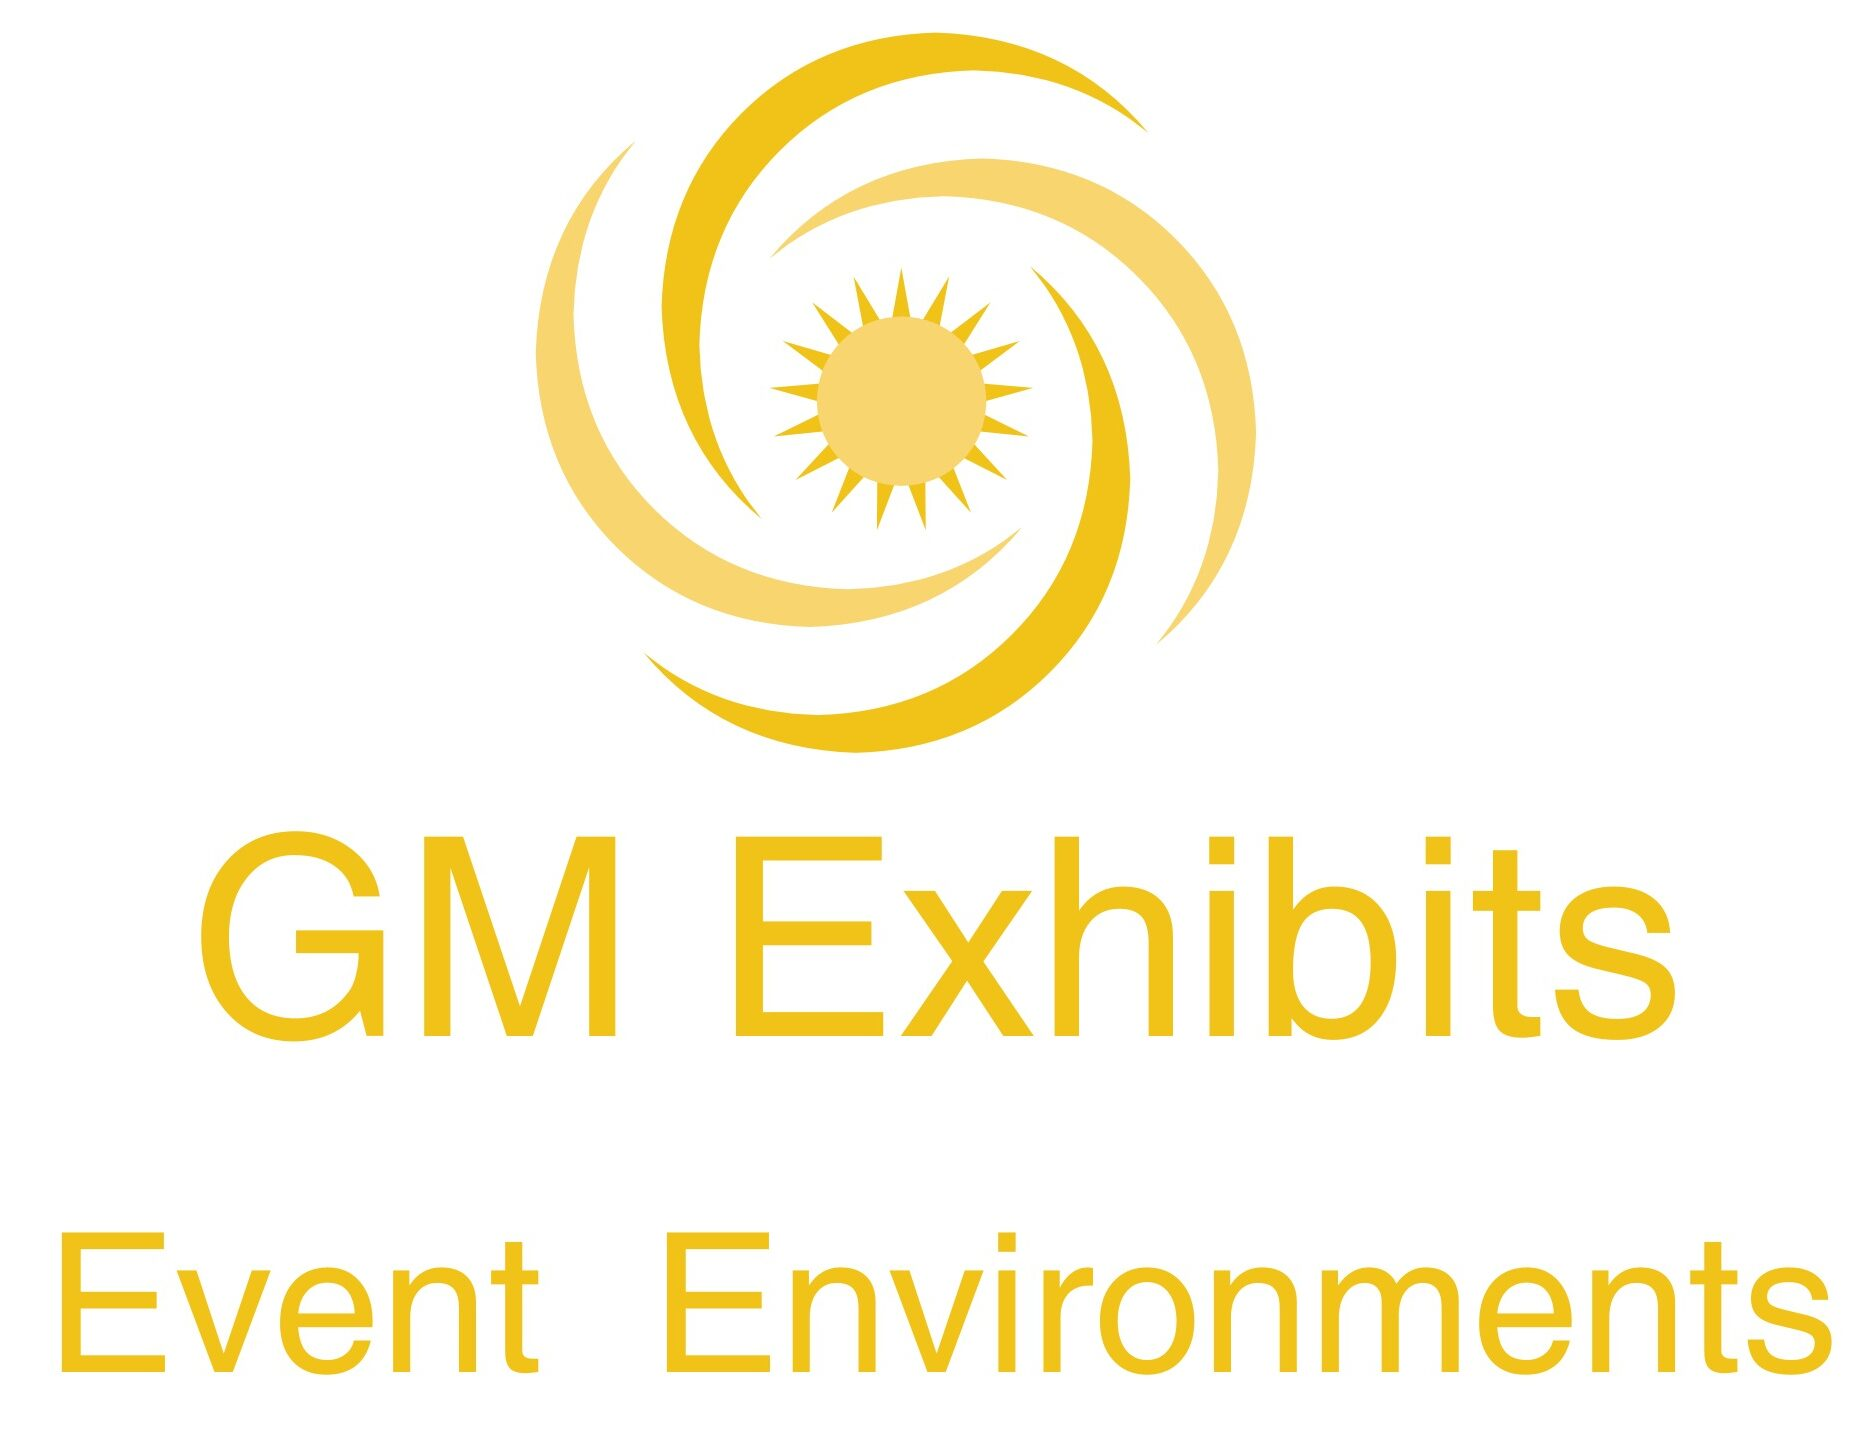 GM Exhibits